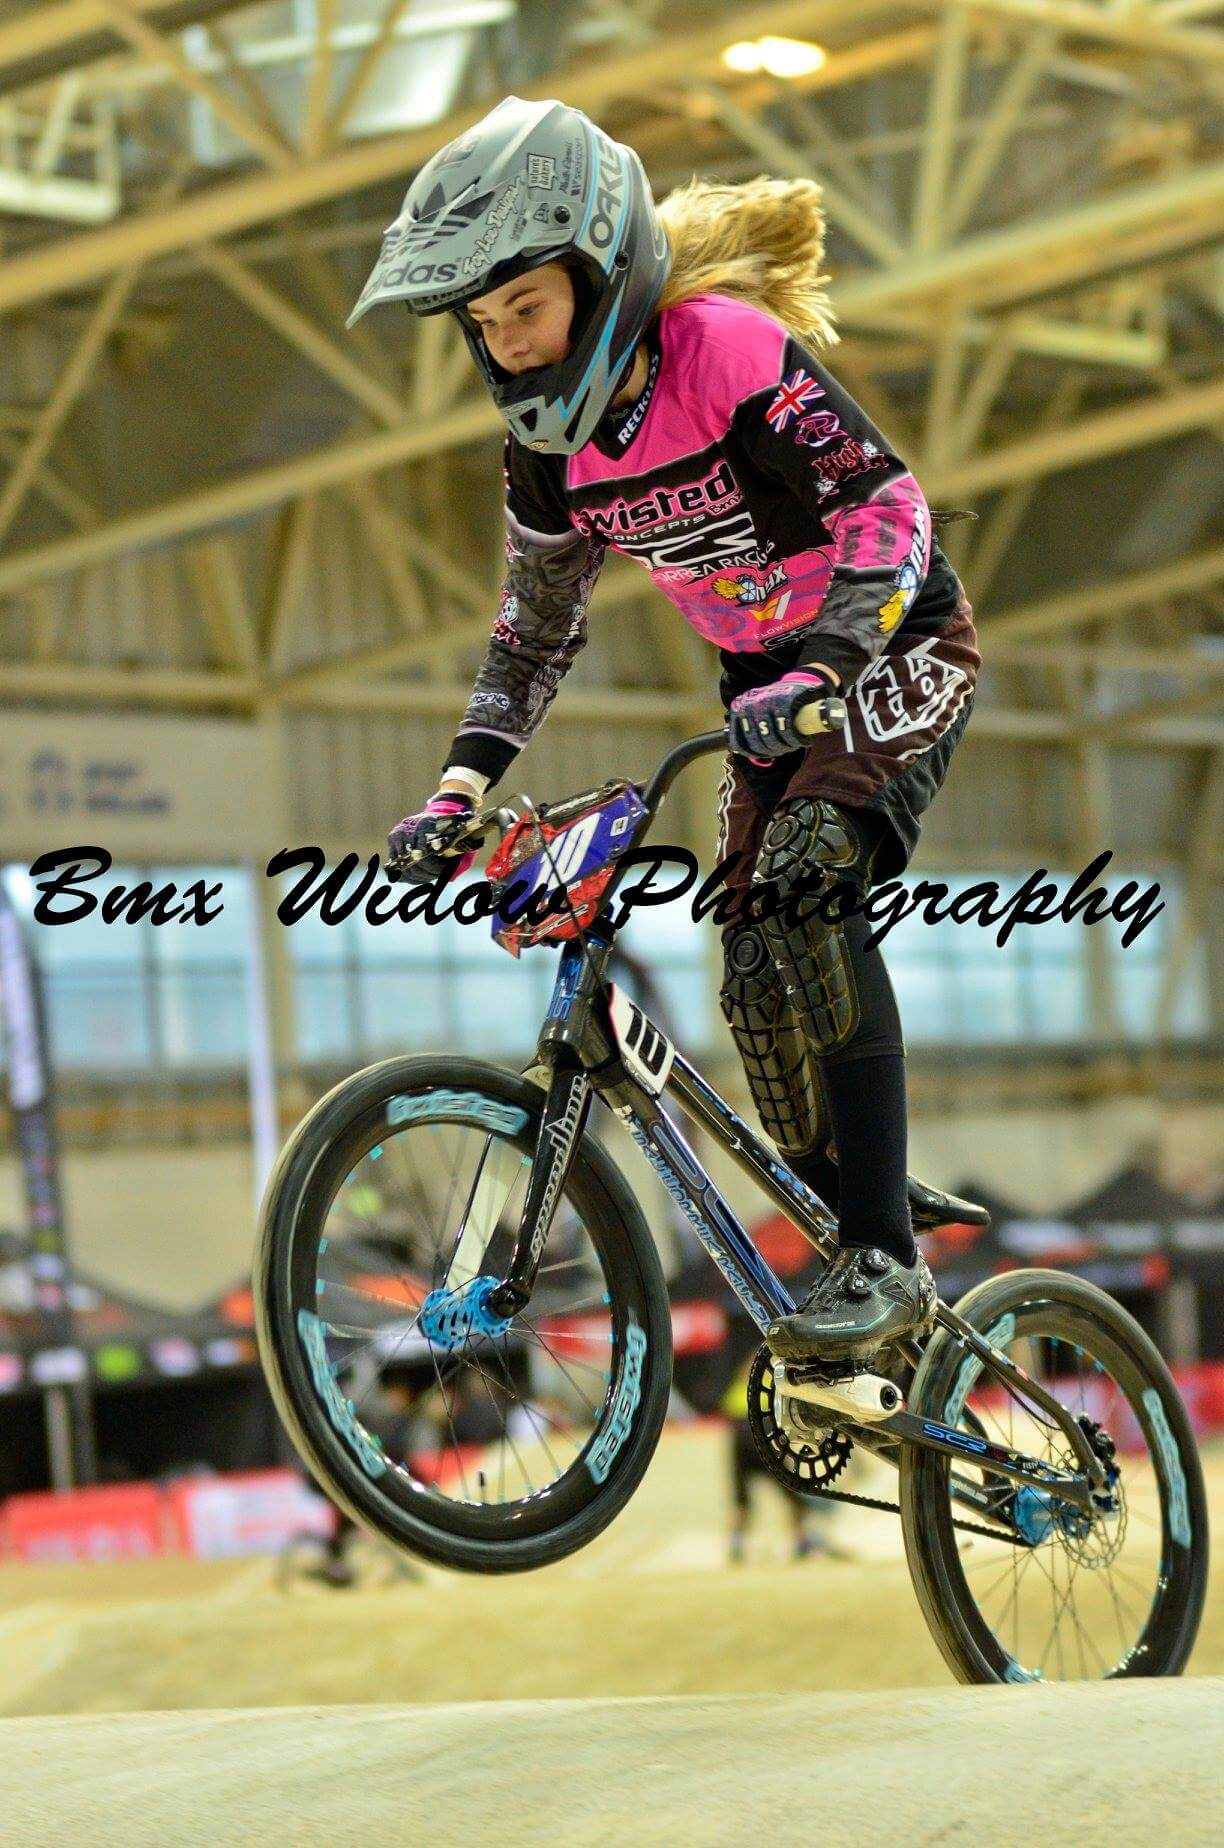 Twisted Concepts - Manchester - BMX Widow - i06